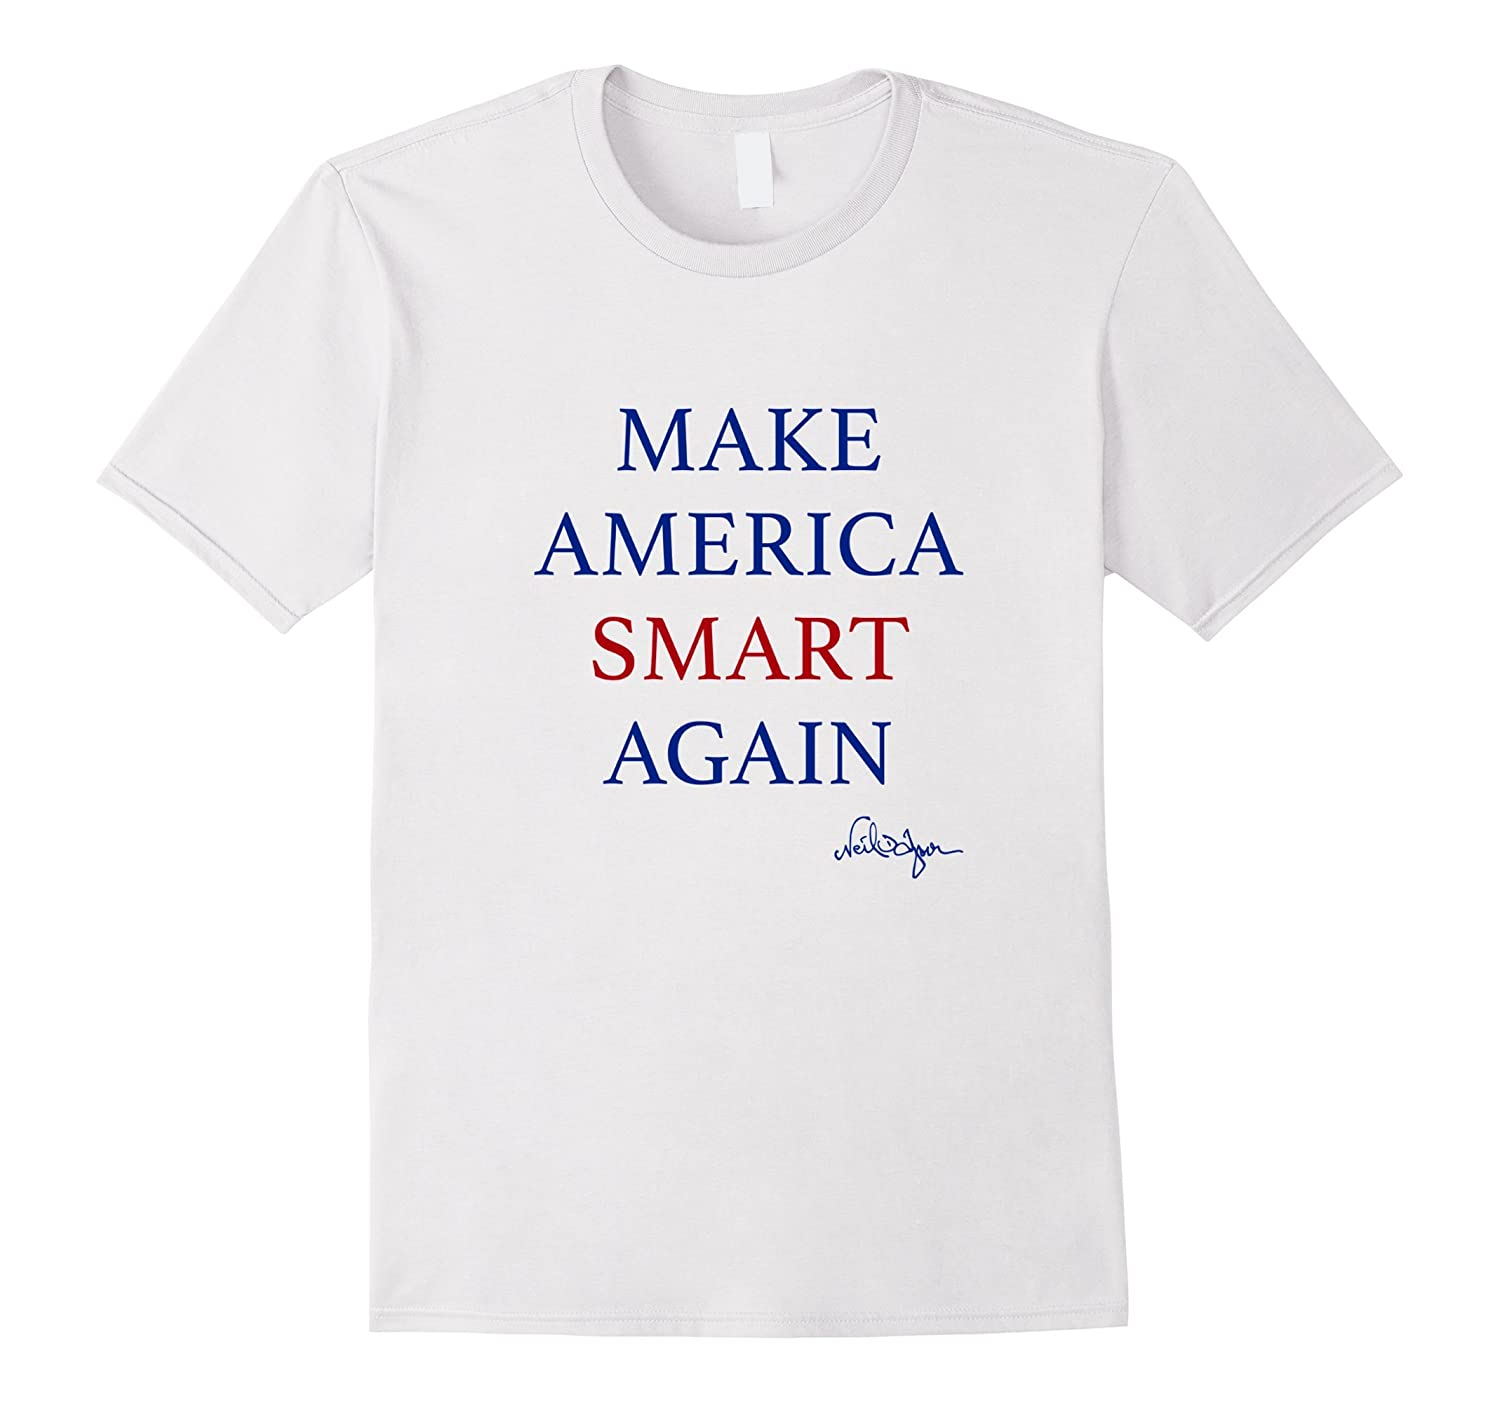 Make America Smart Again (blue/red) - Neil deGrasse Tyson-BN